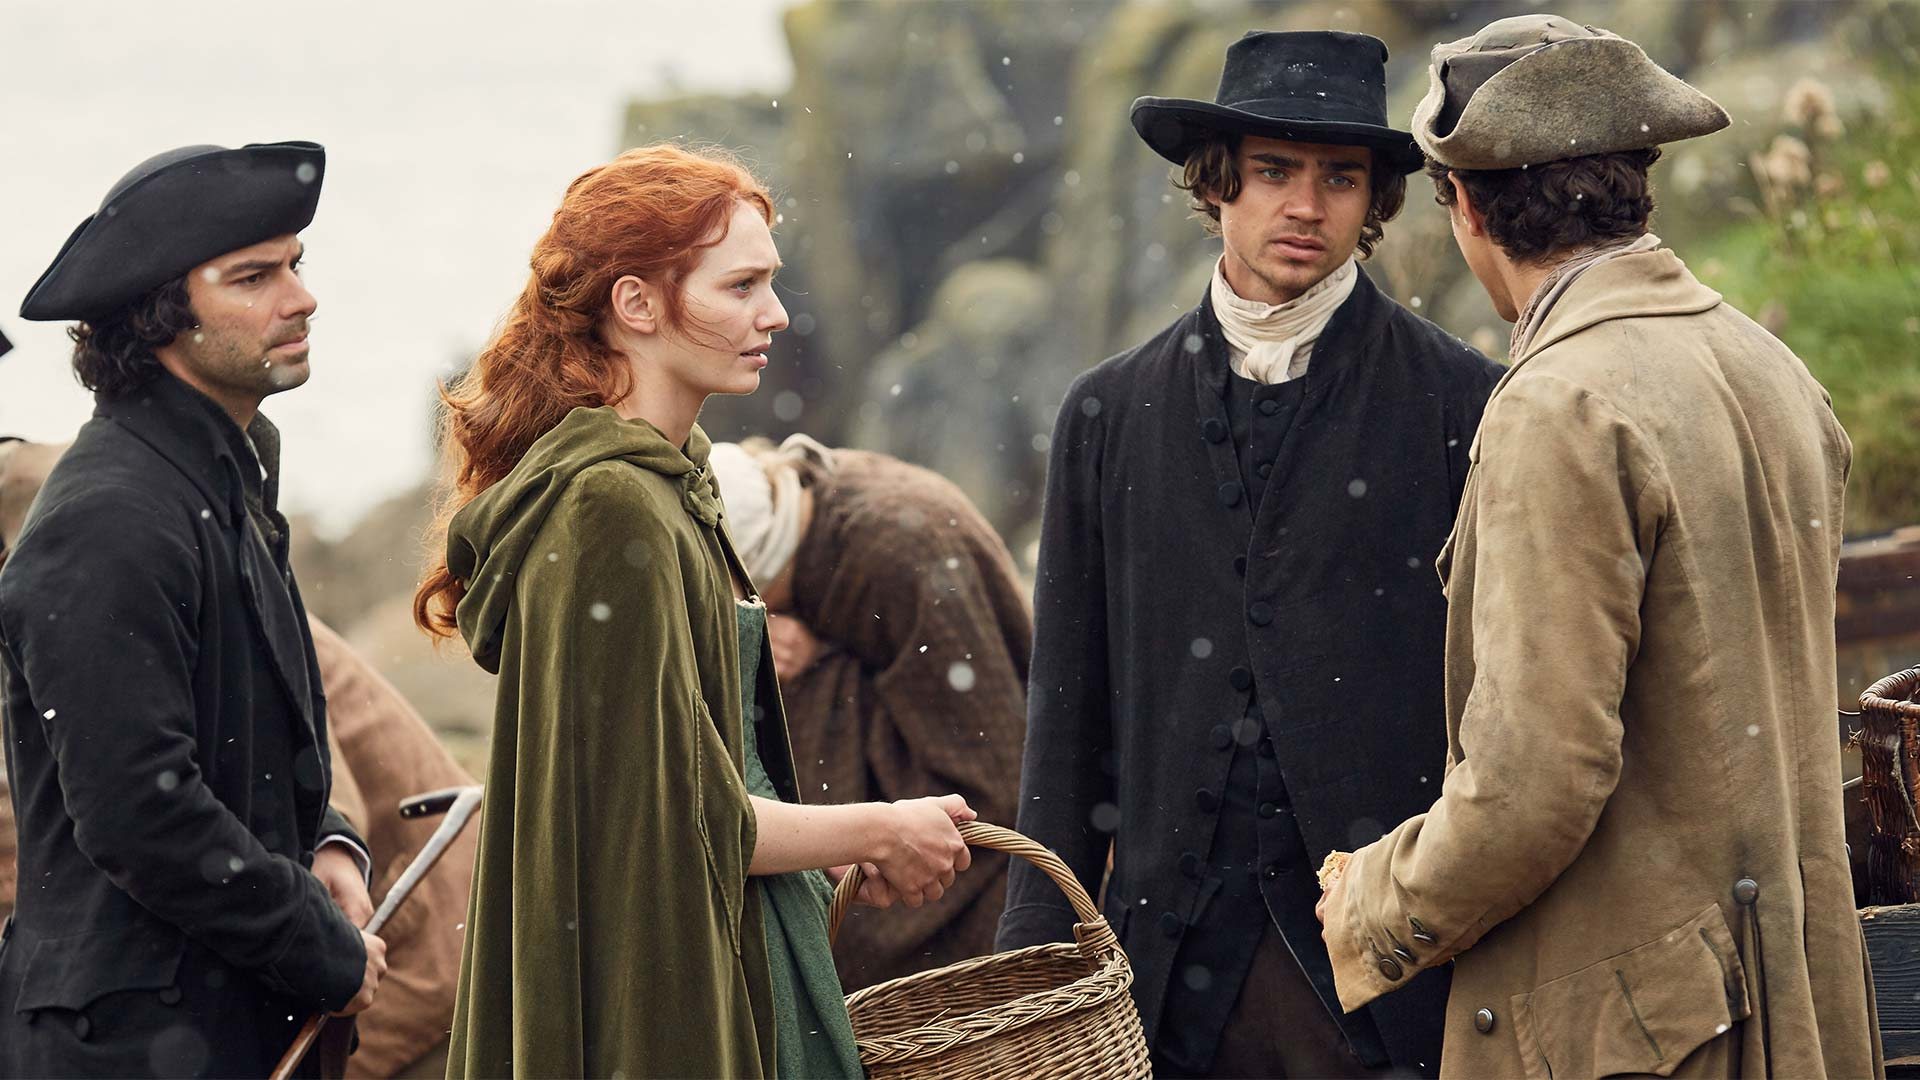 poldark3_e3_group_hero